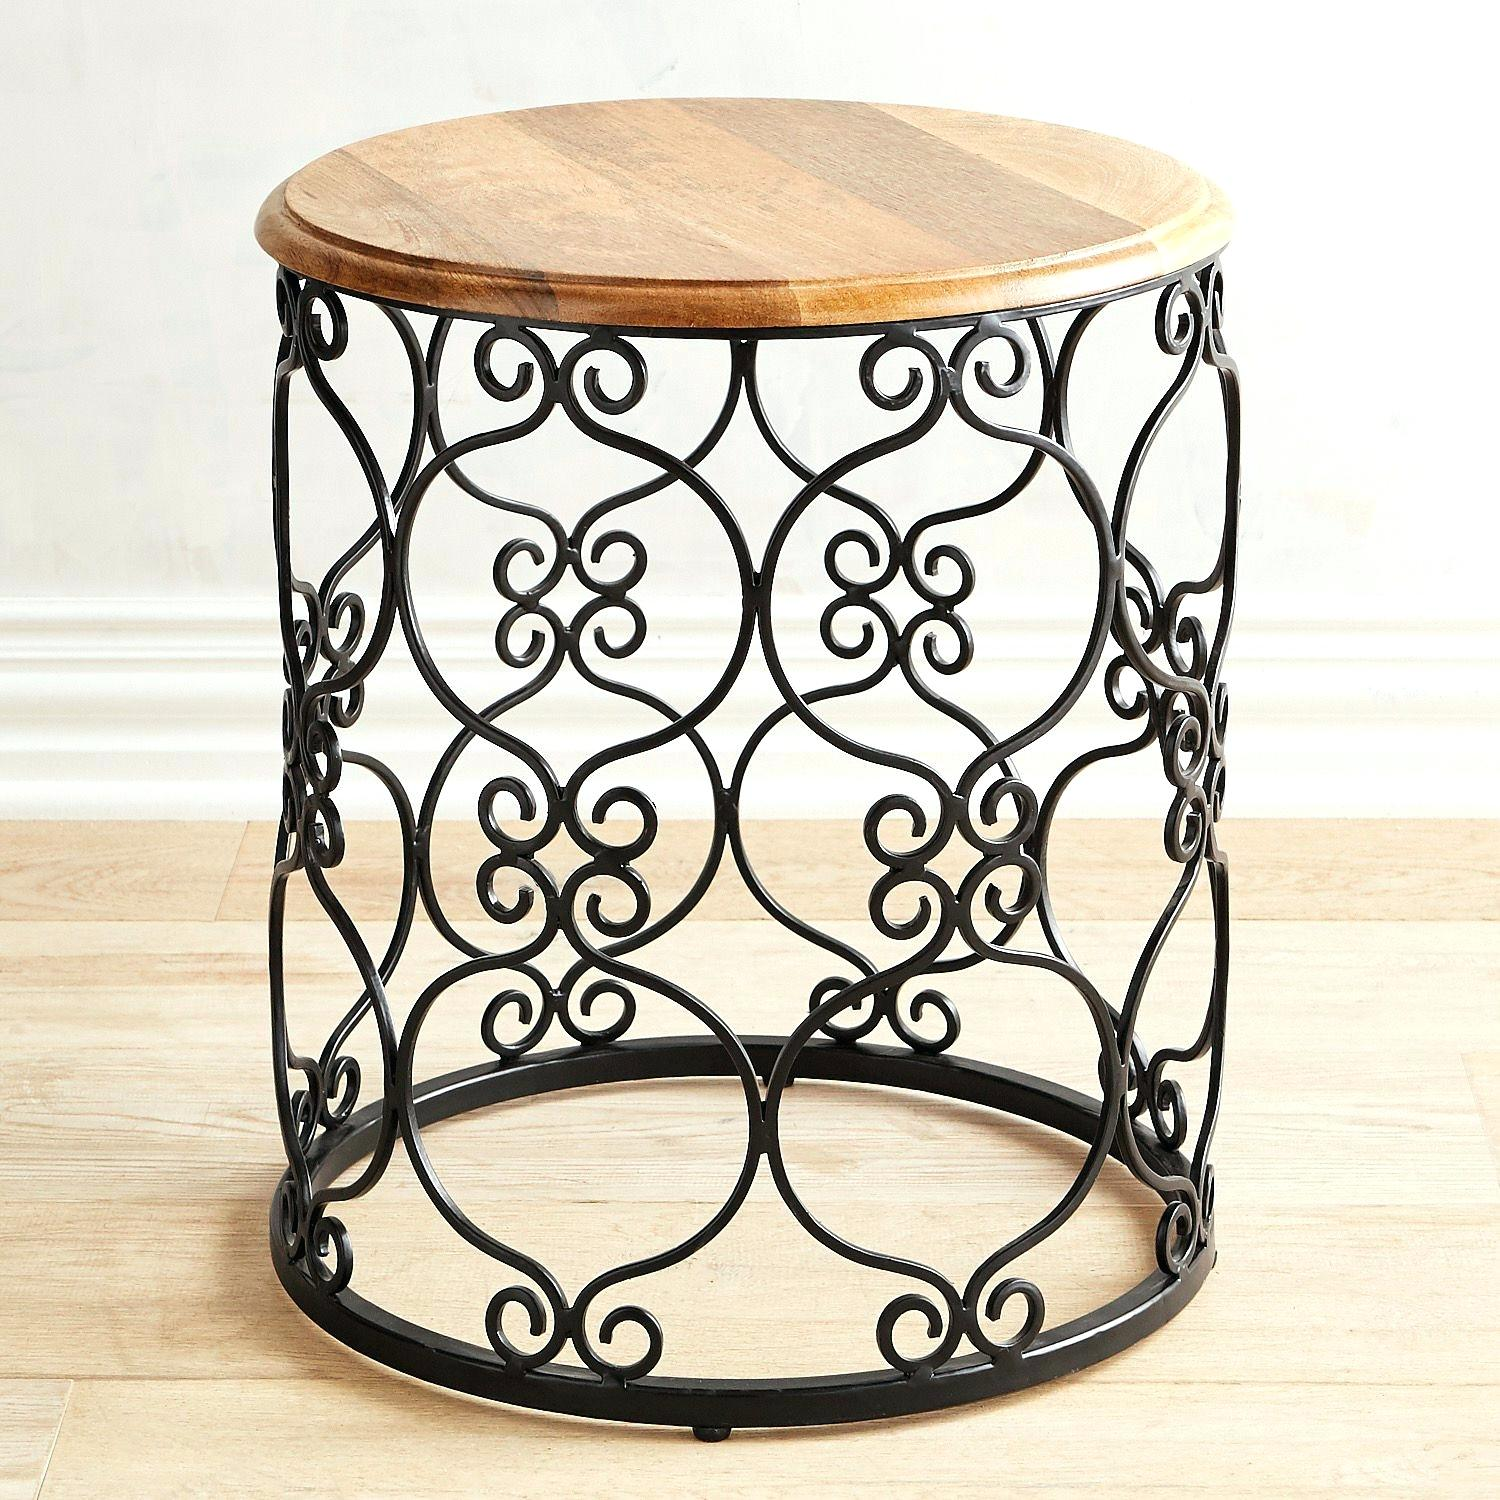 fretwork accent table info target threshold marble top side with drawer gold and glass end skinny bedroom chairs for small spaces big sun umbrella tub chair unfinished wood coffee